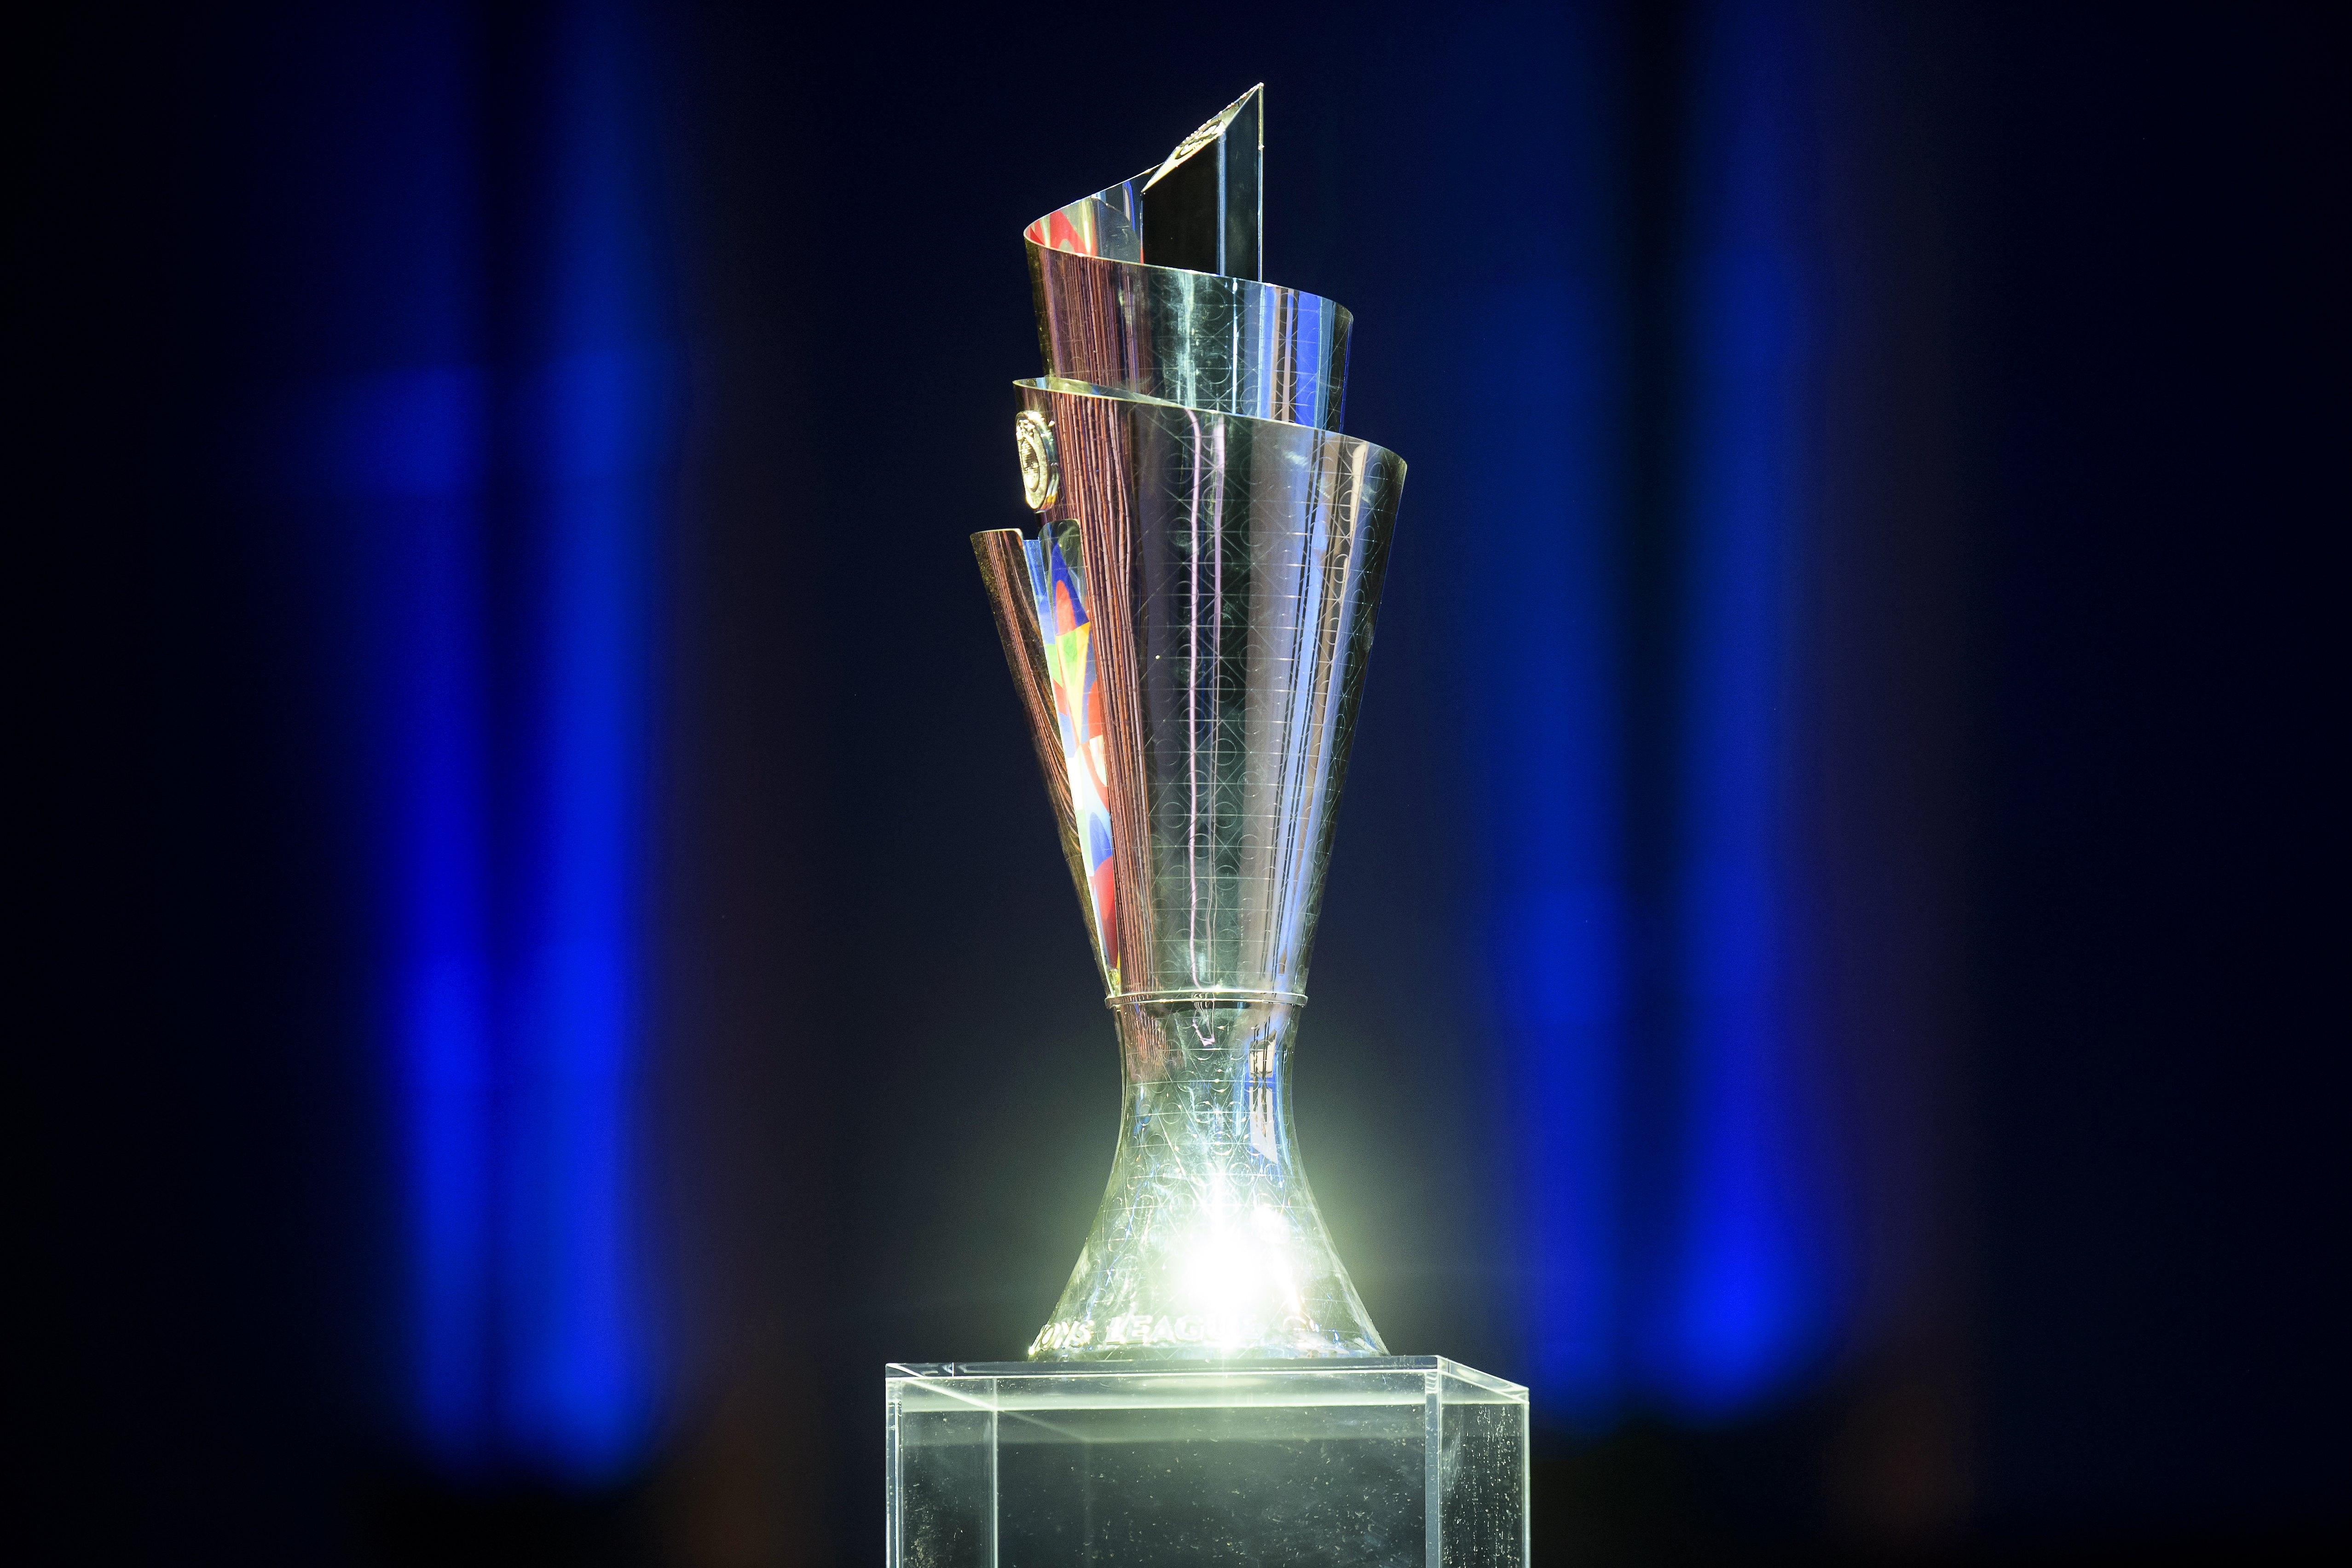 There's also a shiny new trophy up for grabs